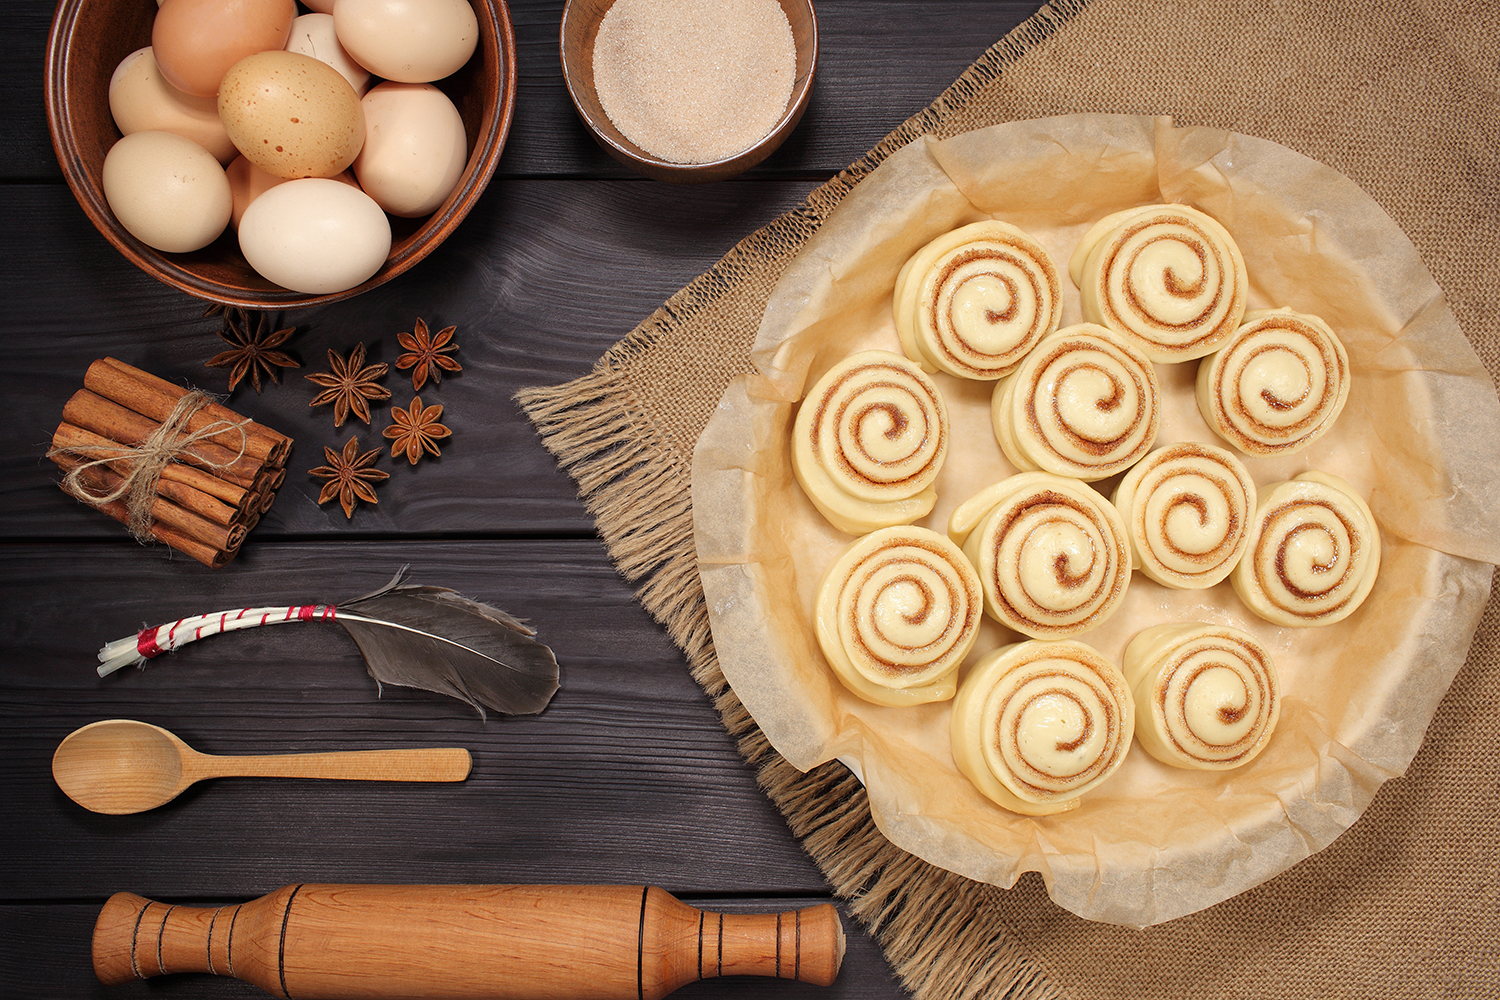 Set of 11 photos - raw buns: cinnamon rolls prepared for baking on a background of rustic table example image 8